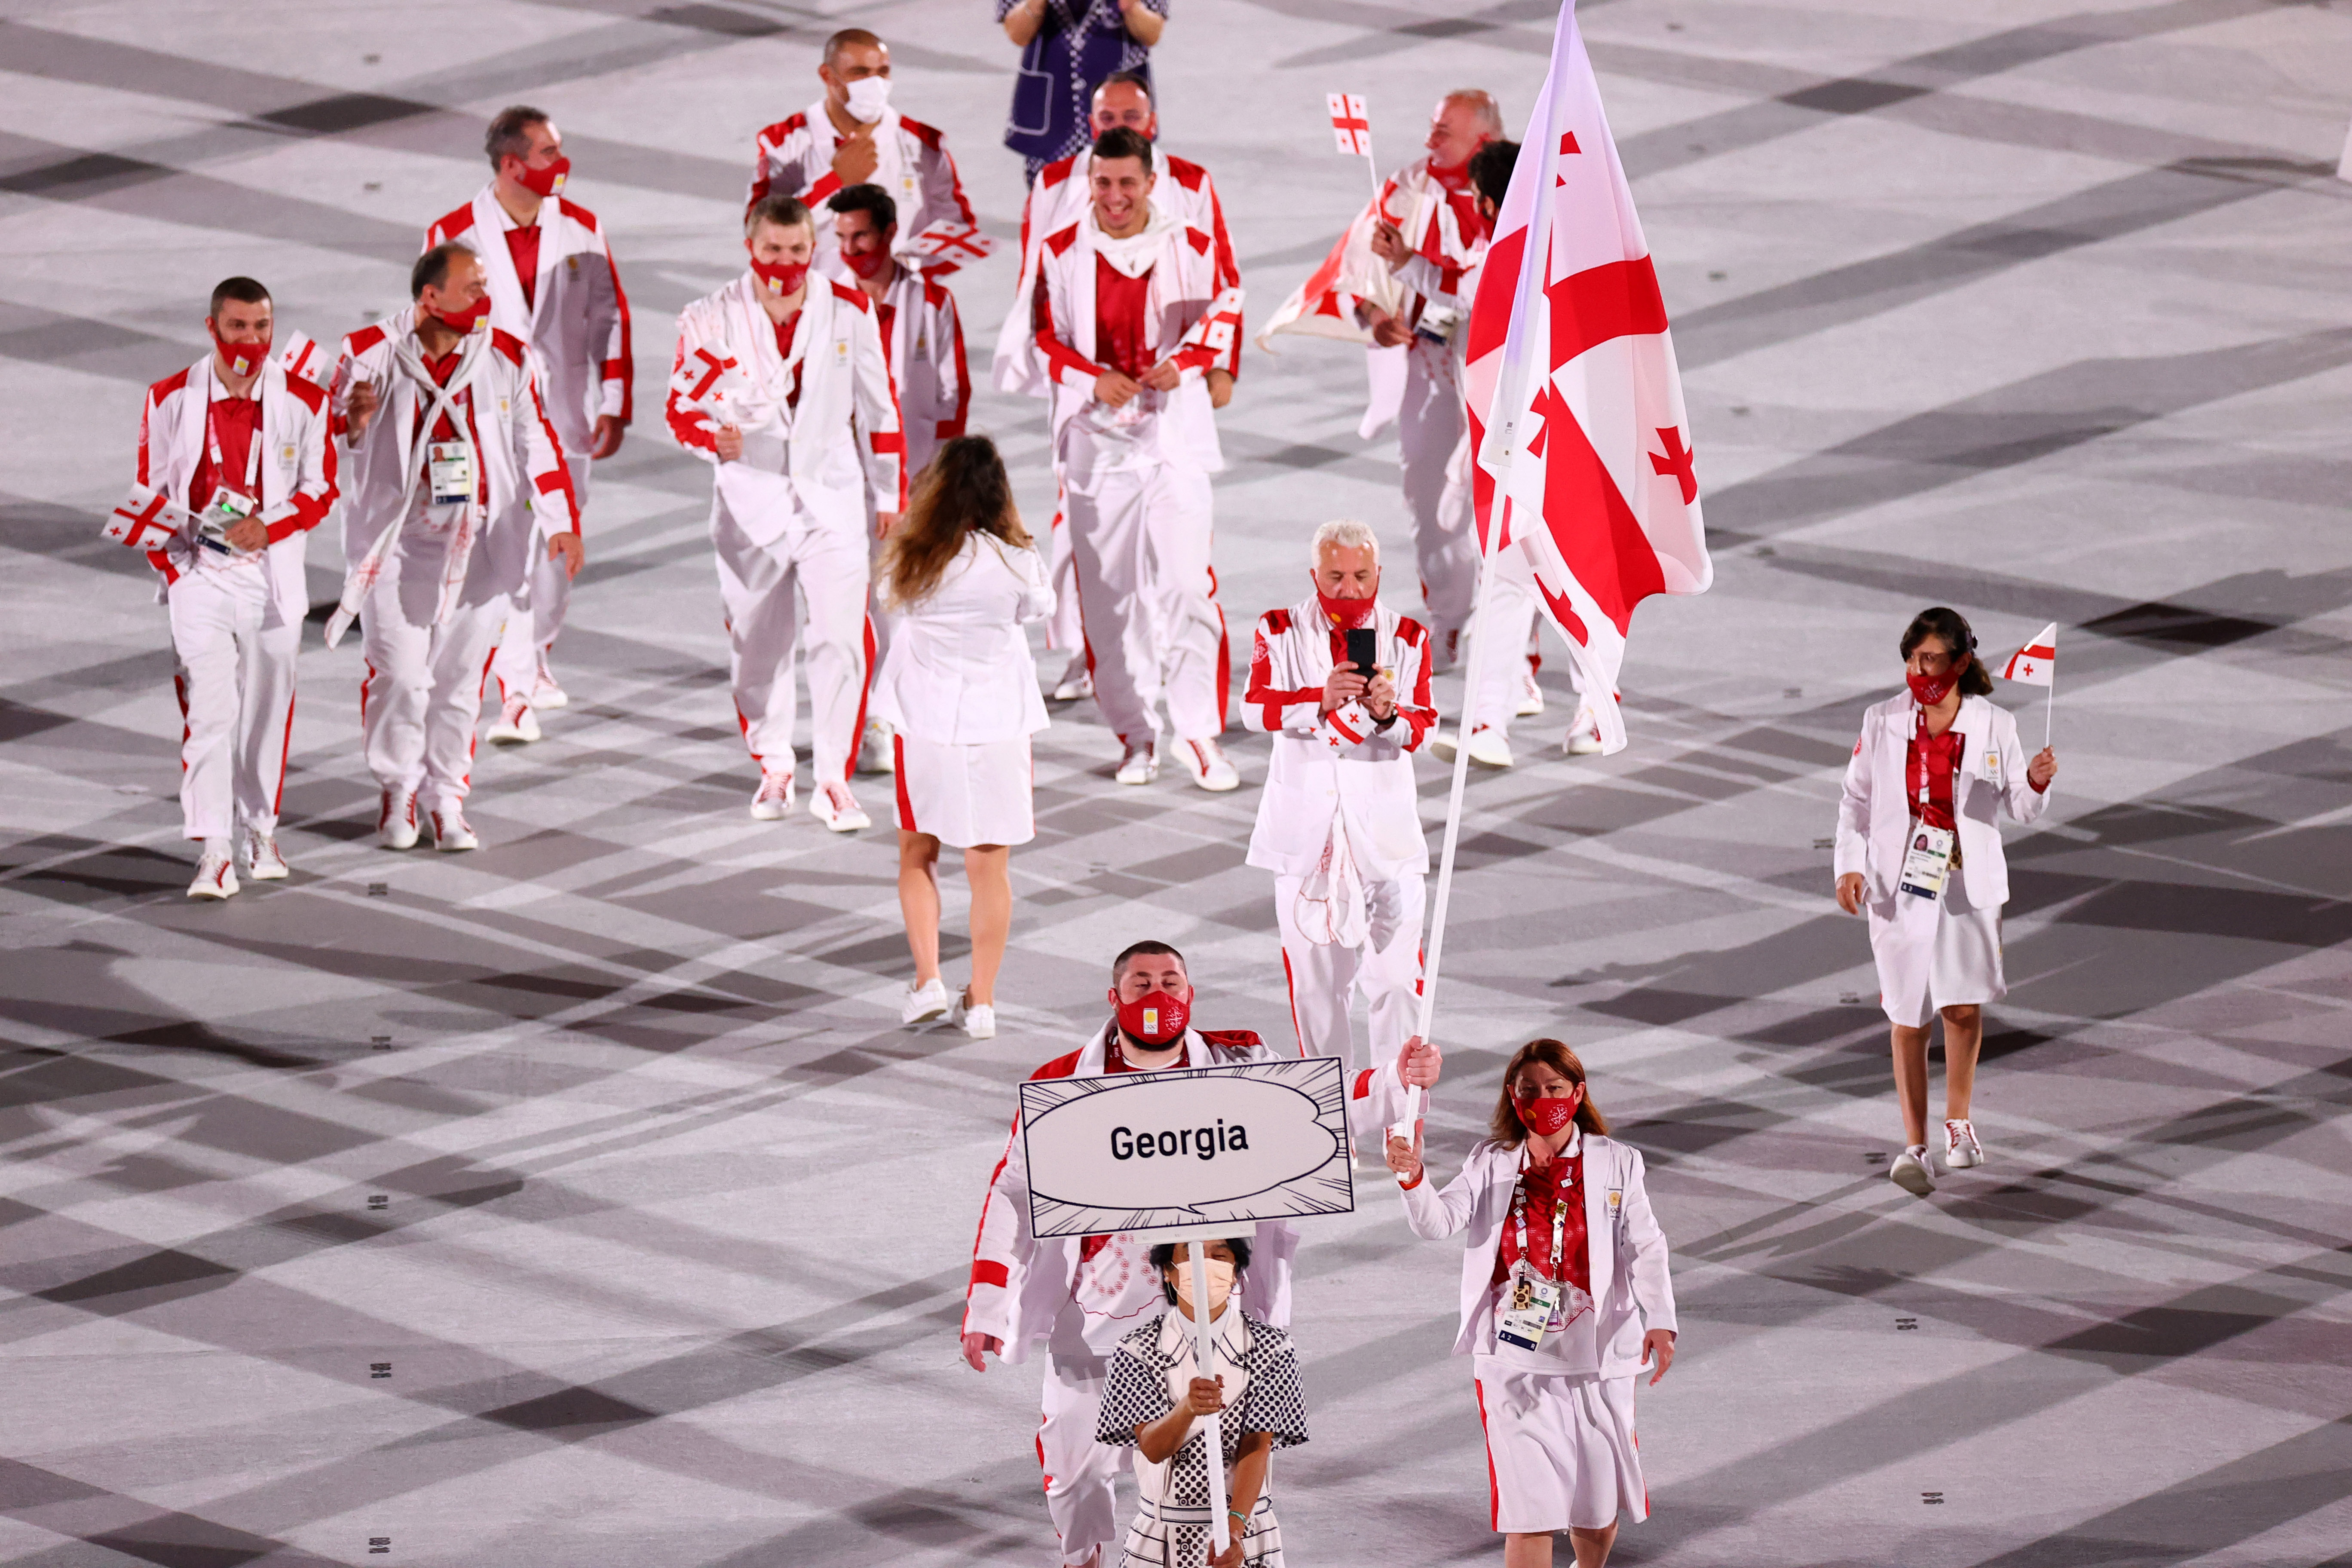 Tokyo 2020 Olympics - The Tokyo 2020 Olympics Opening Ceremony - Olympic Stadium, Tokyo, Japan - July 23, 2021. Flag bearers Nino Salukvadze of Georgia and Lasha Talakhadze of Georgia lead their contingent during the athletes parade at the opening ceremony REUTERS/Mike Blake